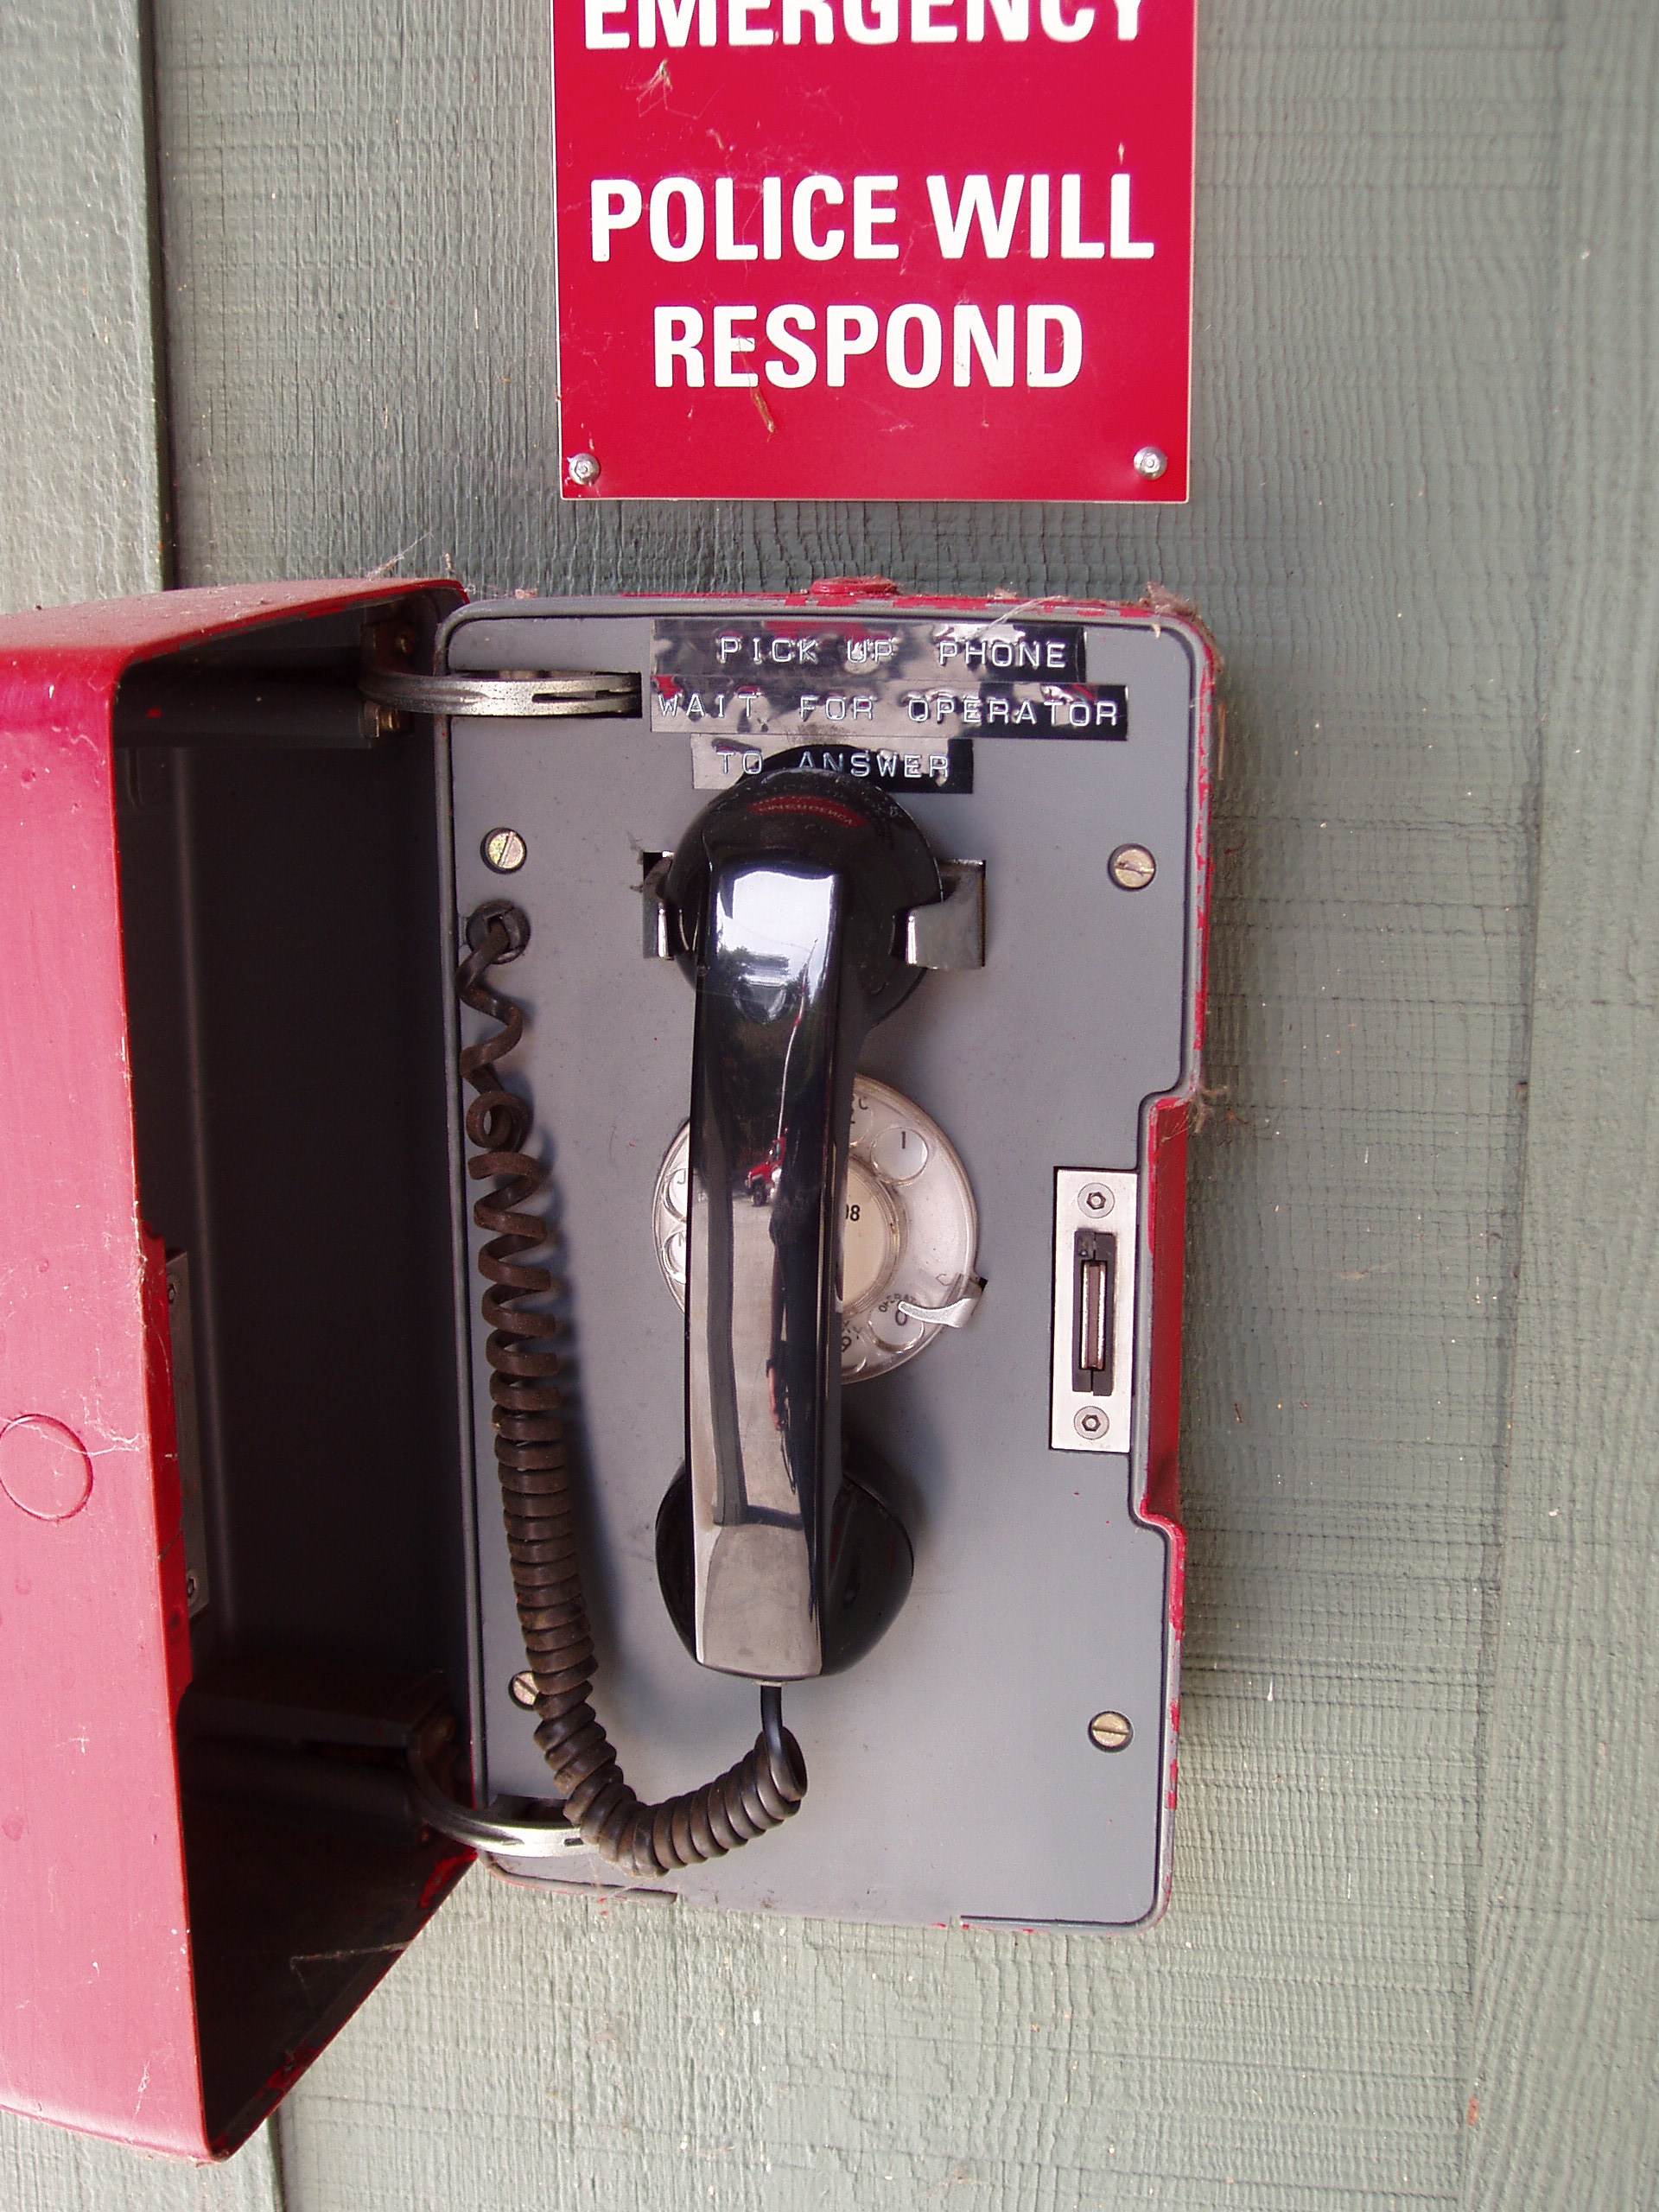 Photo of emergency phone handset